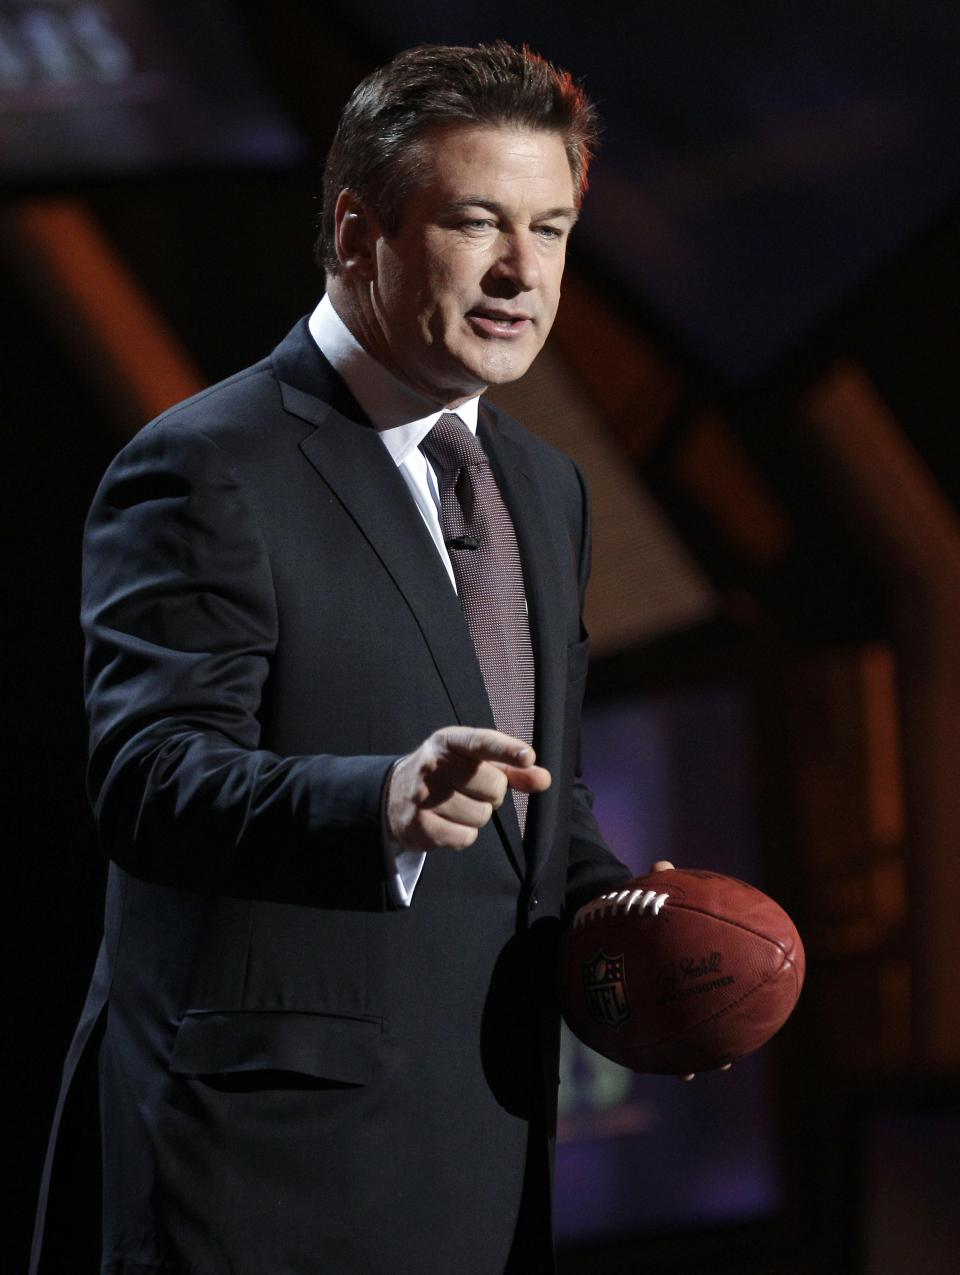 Host Alec Baldwin speaks during the inaugural NFL Honors show Saturday, Feb. 4, 2012, in Indianapolis.The New York Giants will face the New England Patriots in the NFL football's Super Bowl XLVI in Indianapolis on Feb. 5. (AP Photo/Charlie Riedel)